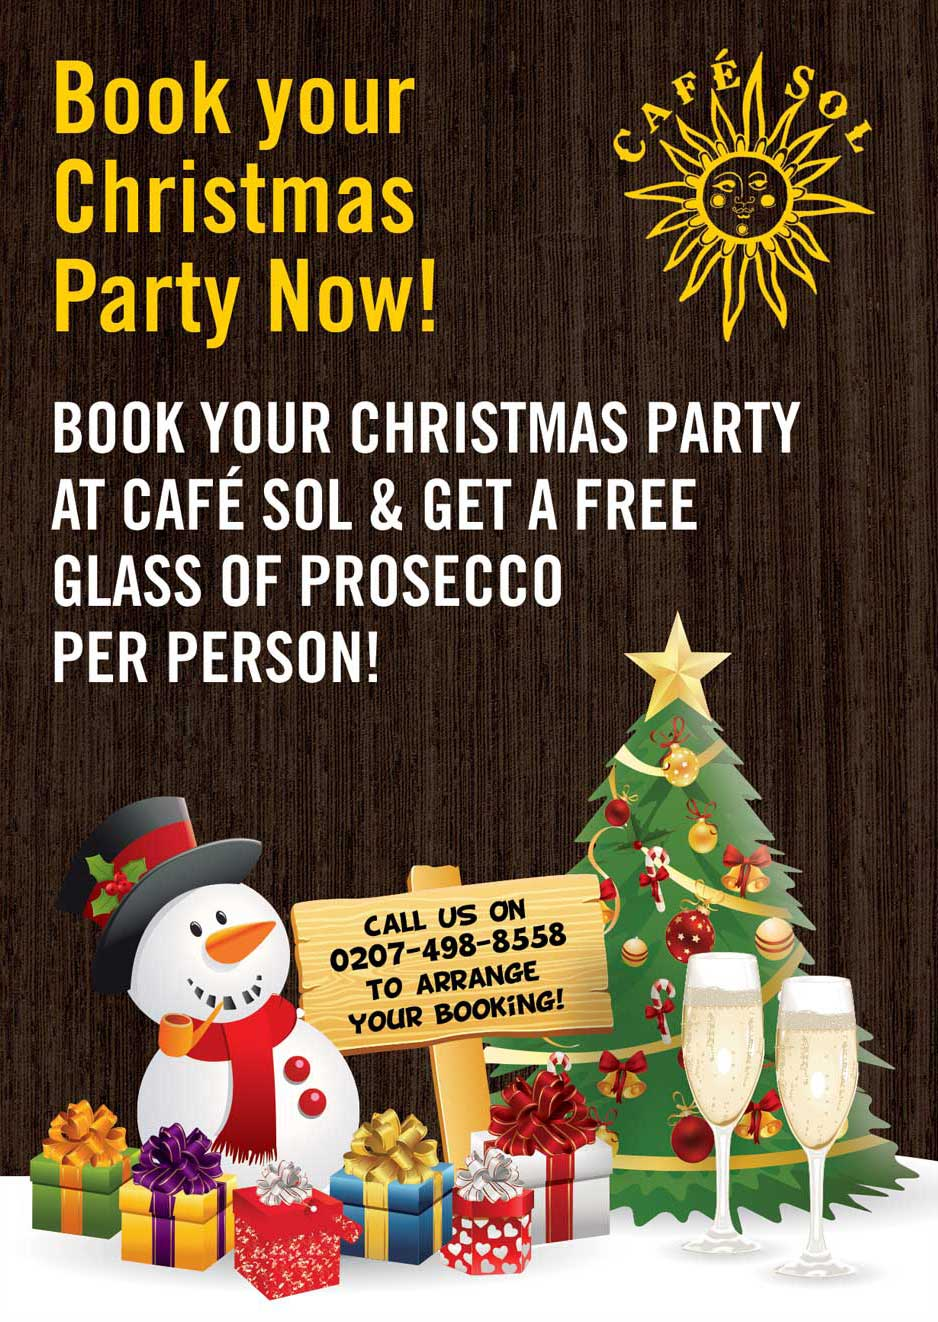 Book Your Christmas Party at Cafe Sol